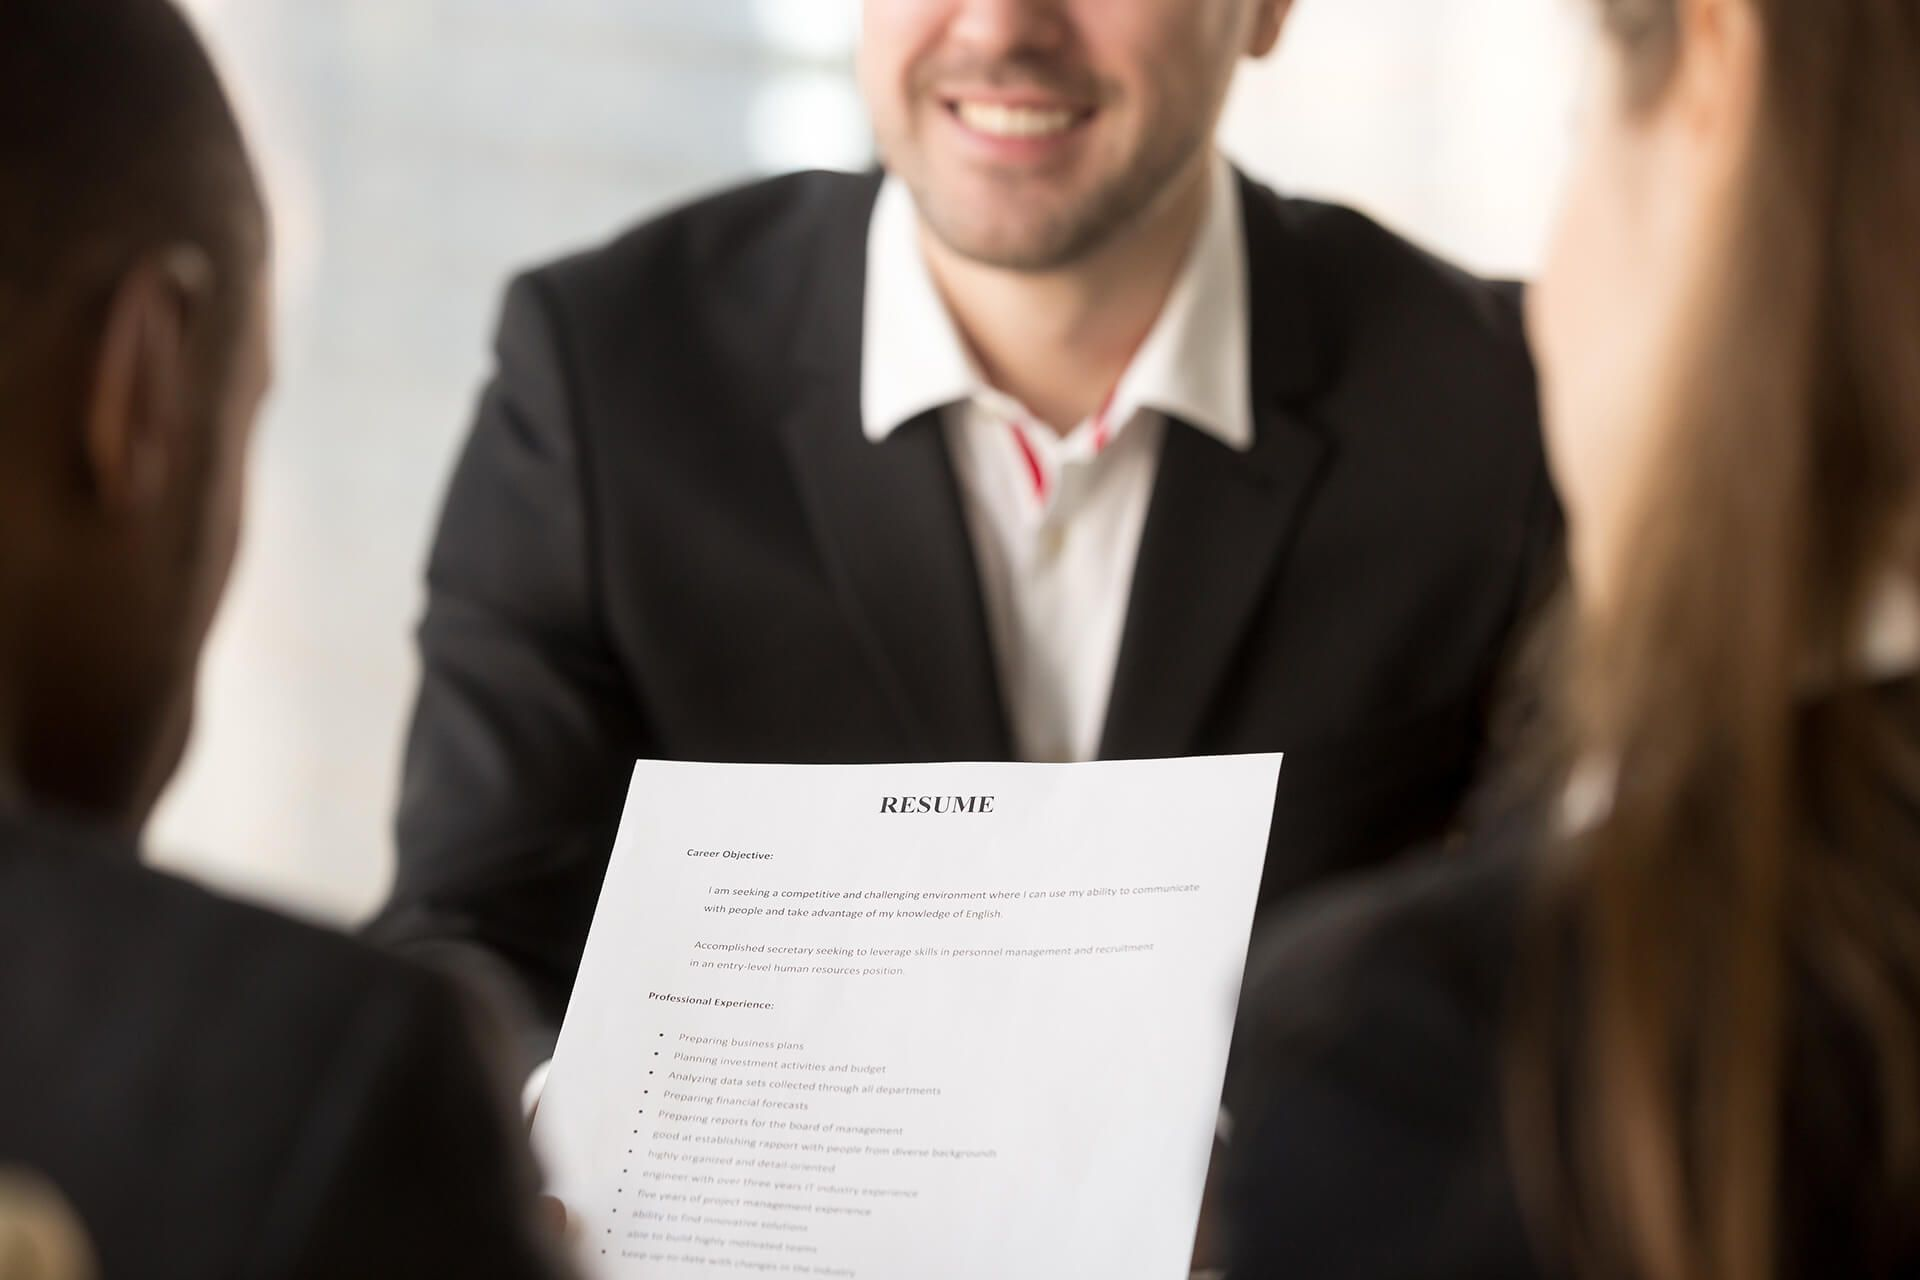 edmonton resume services professional writers ideas writer details images stanford guide Resume Professional Resume Services Edmonton